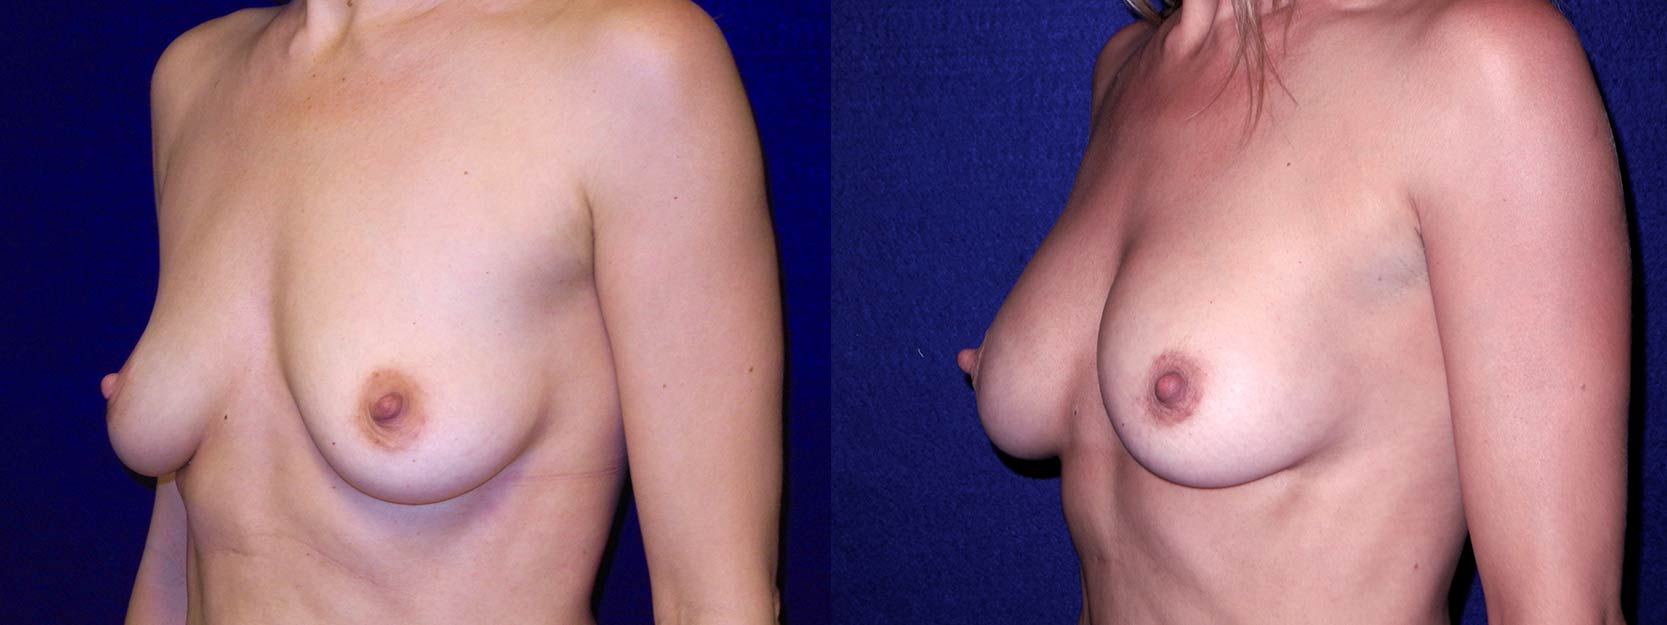 Left 3/4 View - Breast Augmentation After Pregnancy - Silicone Implants